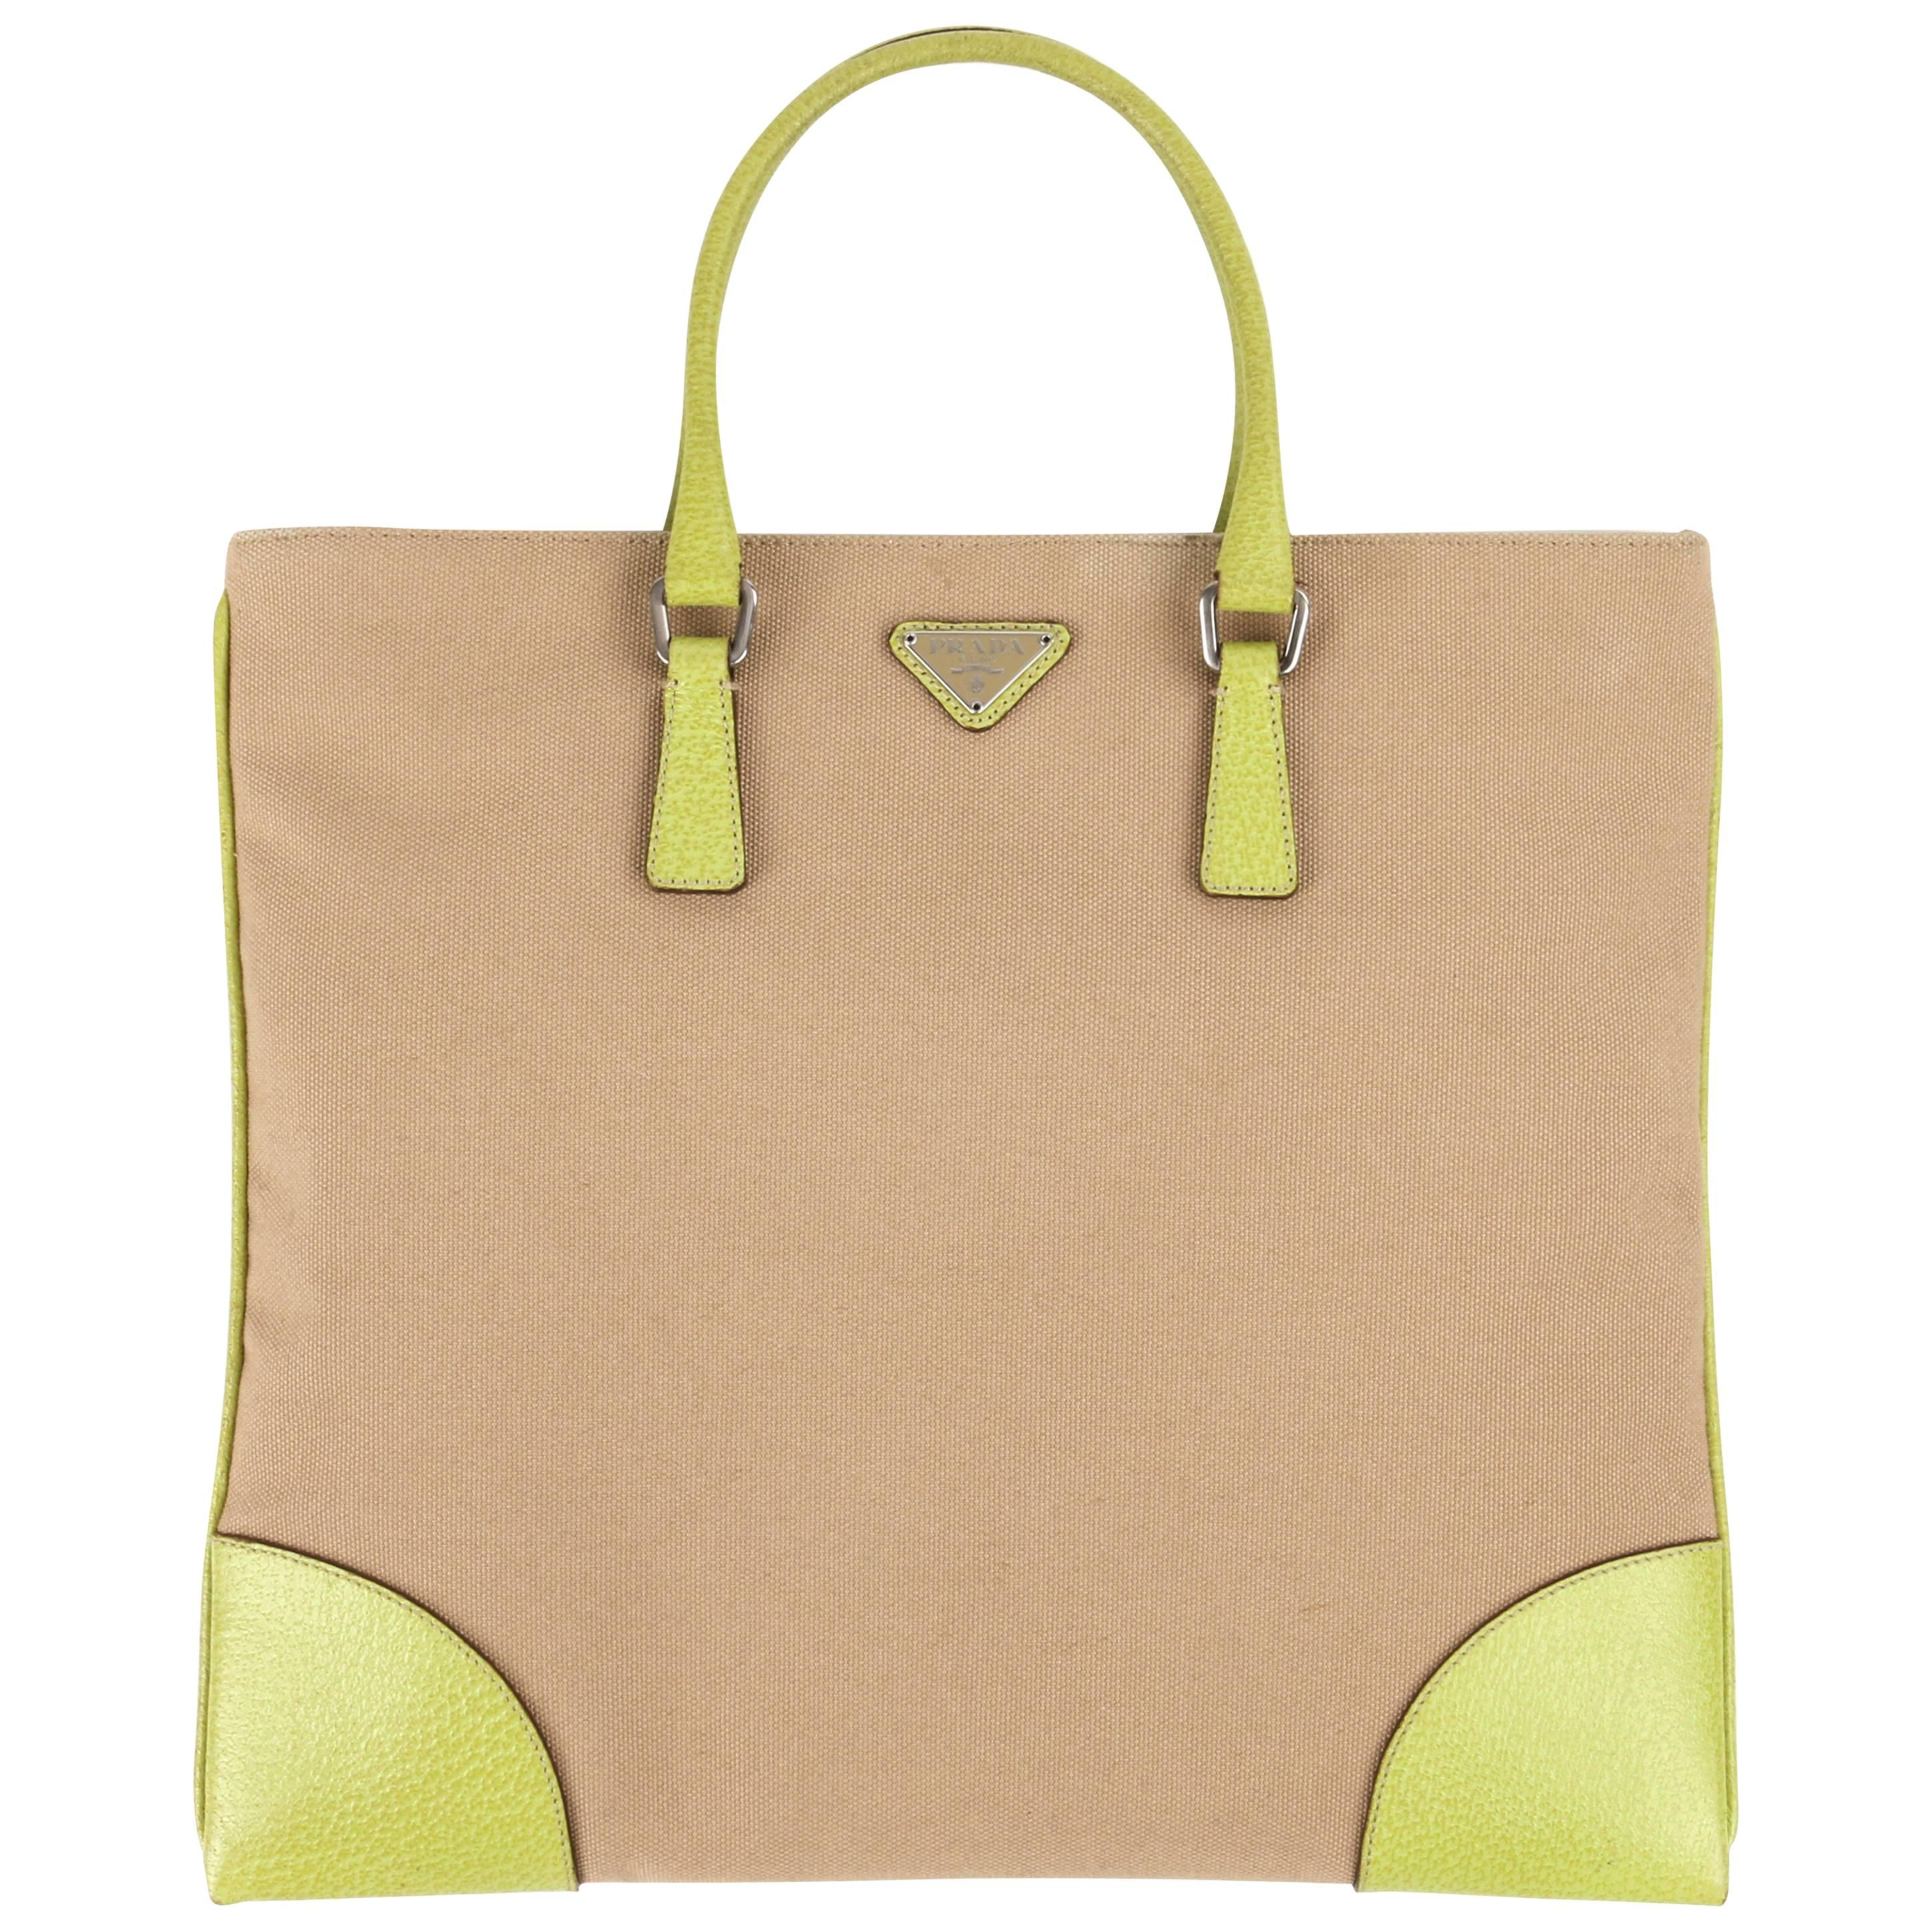 PRADA Khaki Canapa Canvas & Chartreuse Green Leather Tote Bag Purse